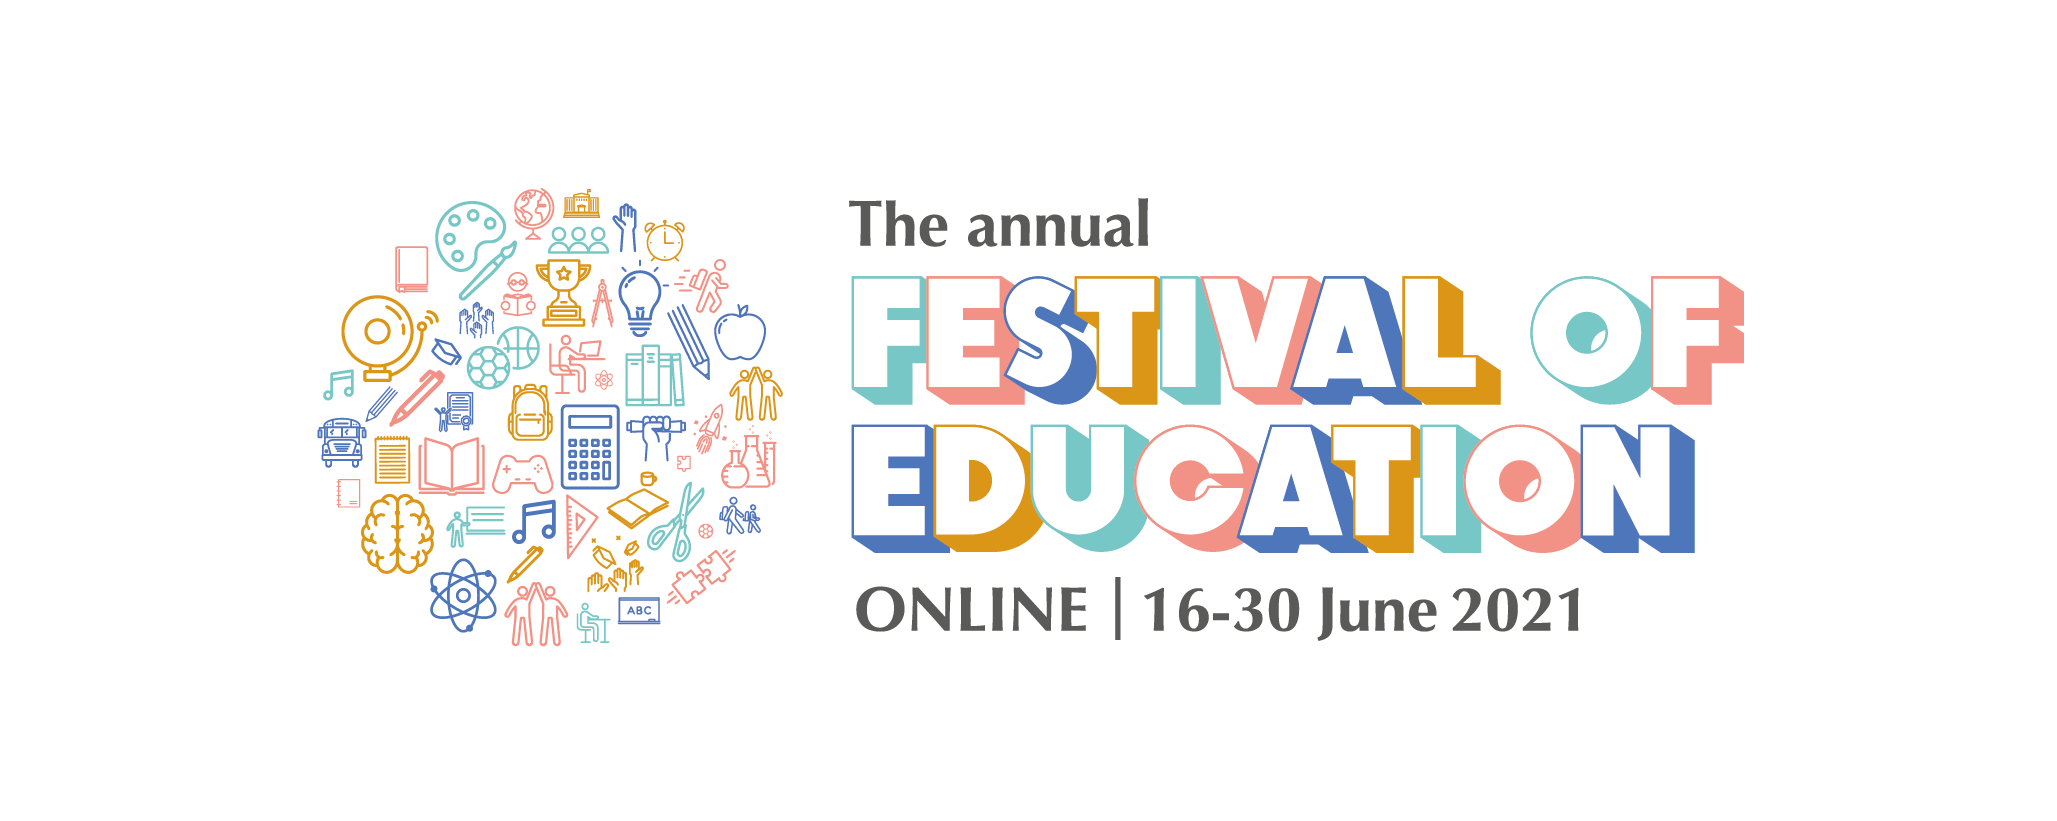 Festival of Education